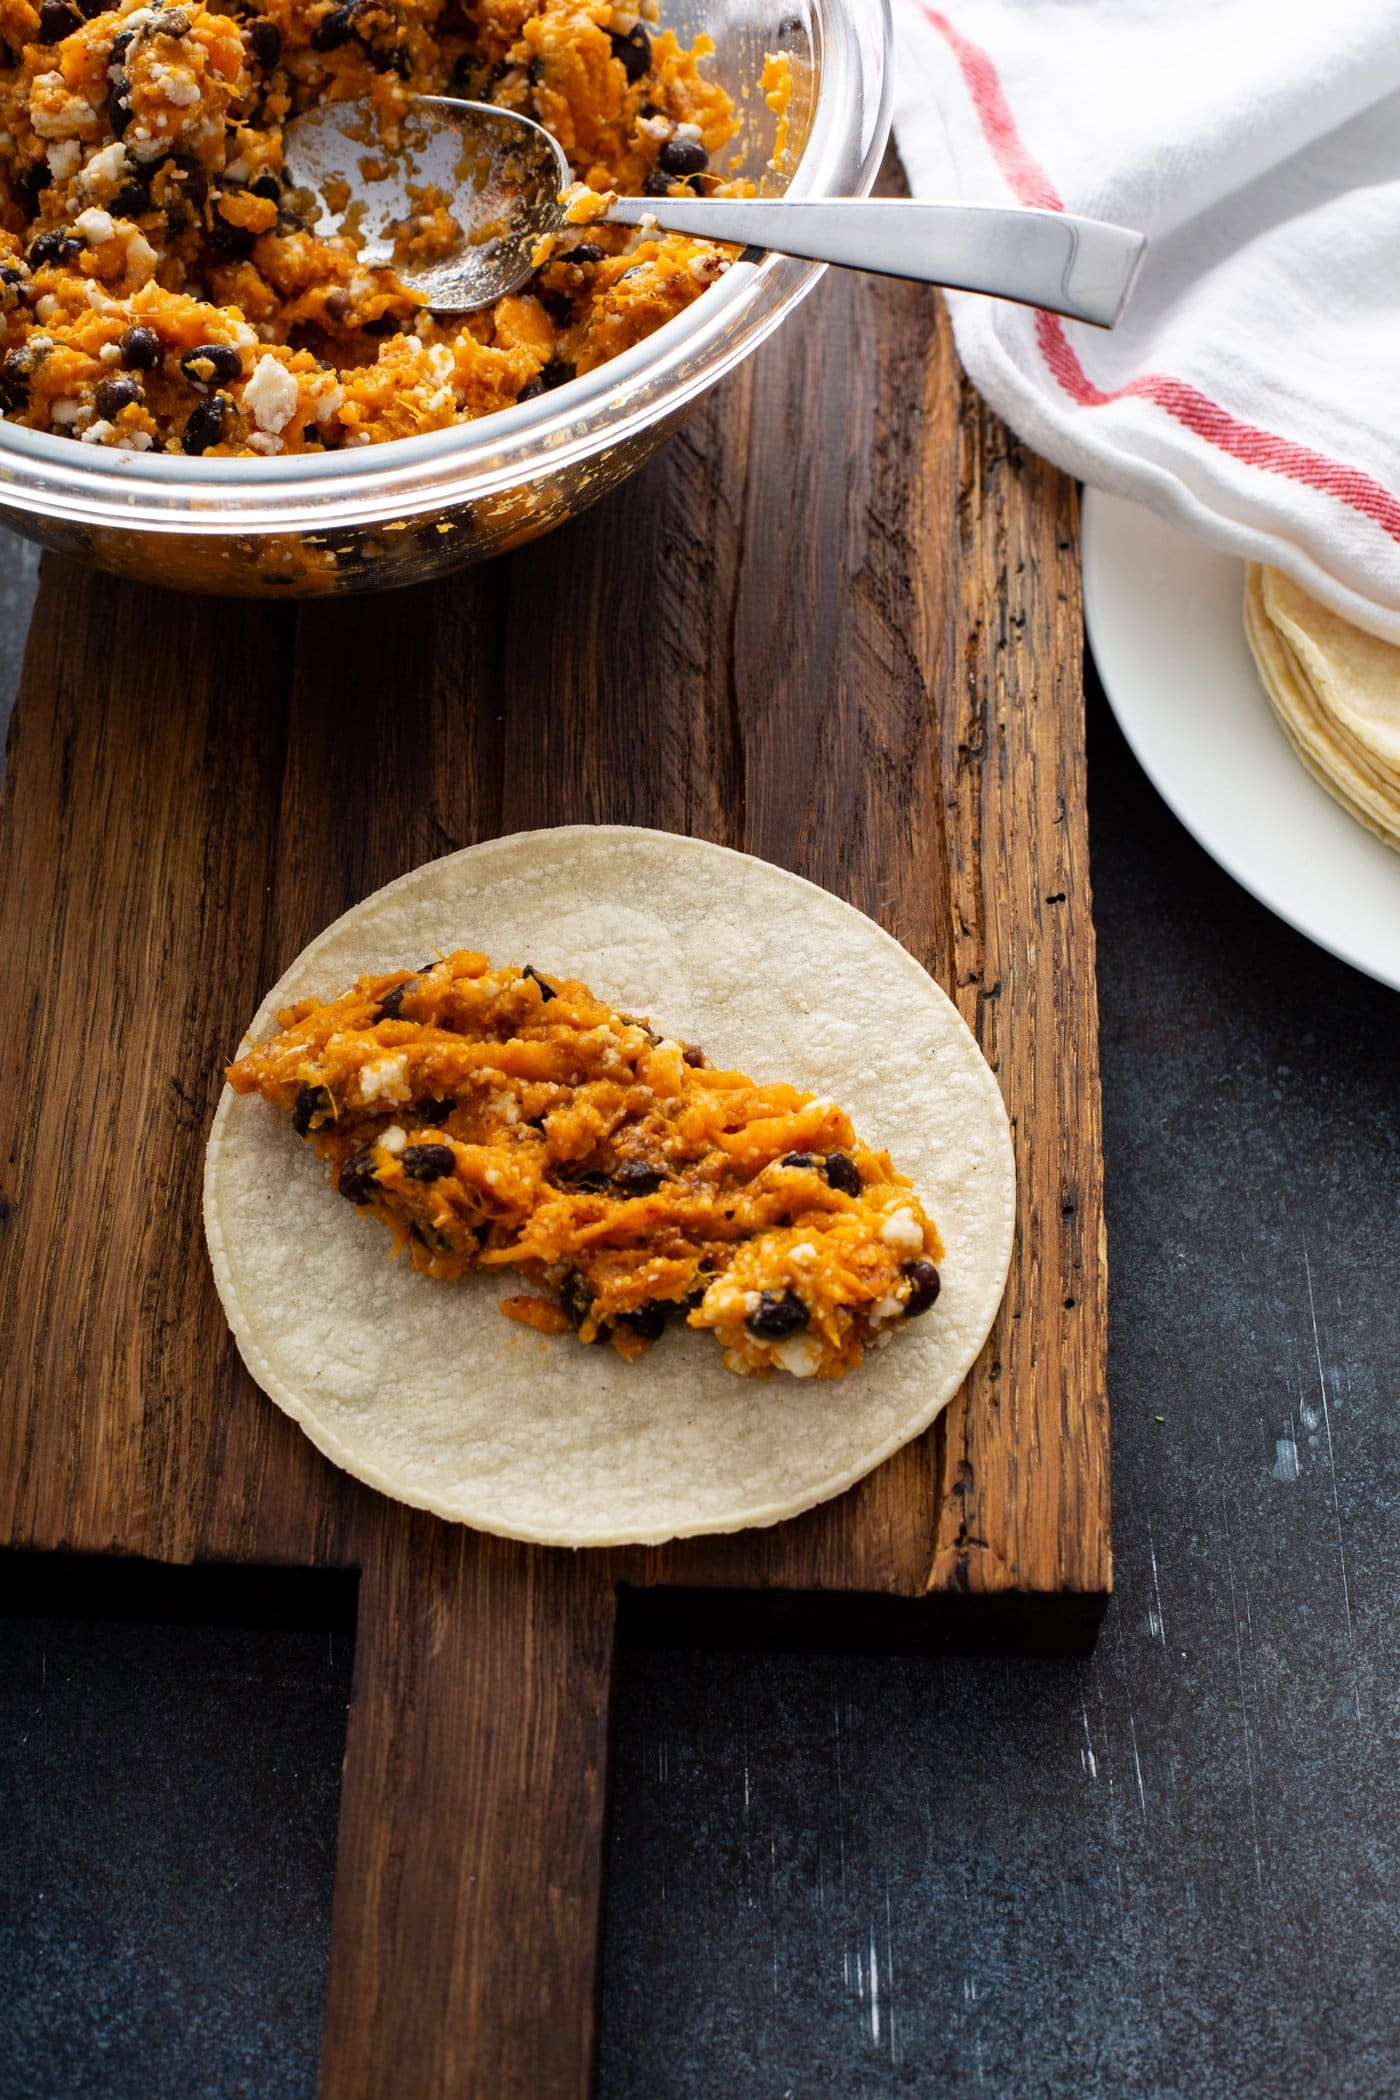 Sweet potato filling with beans and cheese on an open corn tortilla. There is a bowl of enchilada filling and a plate of corn tortillas covered with a red and white kitchen towel in the background.